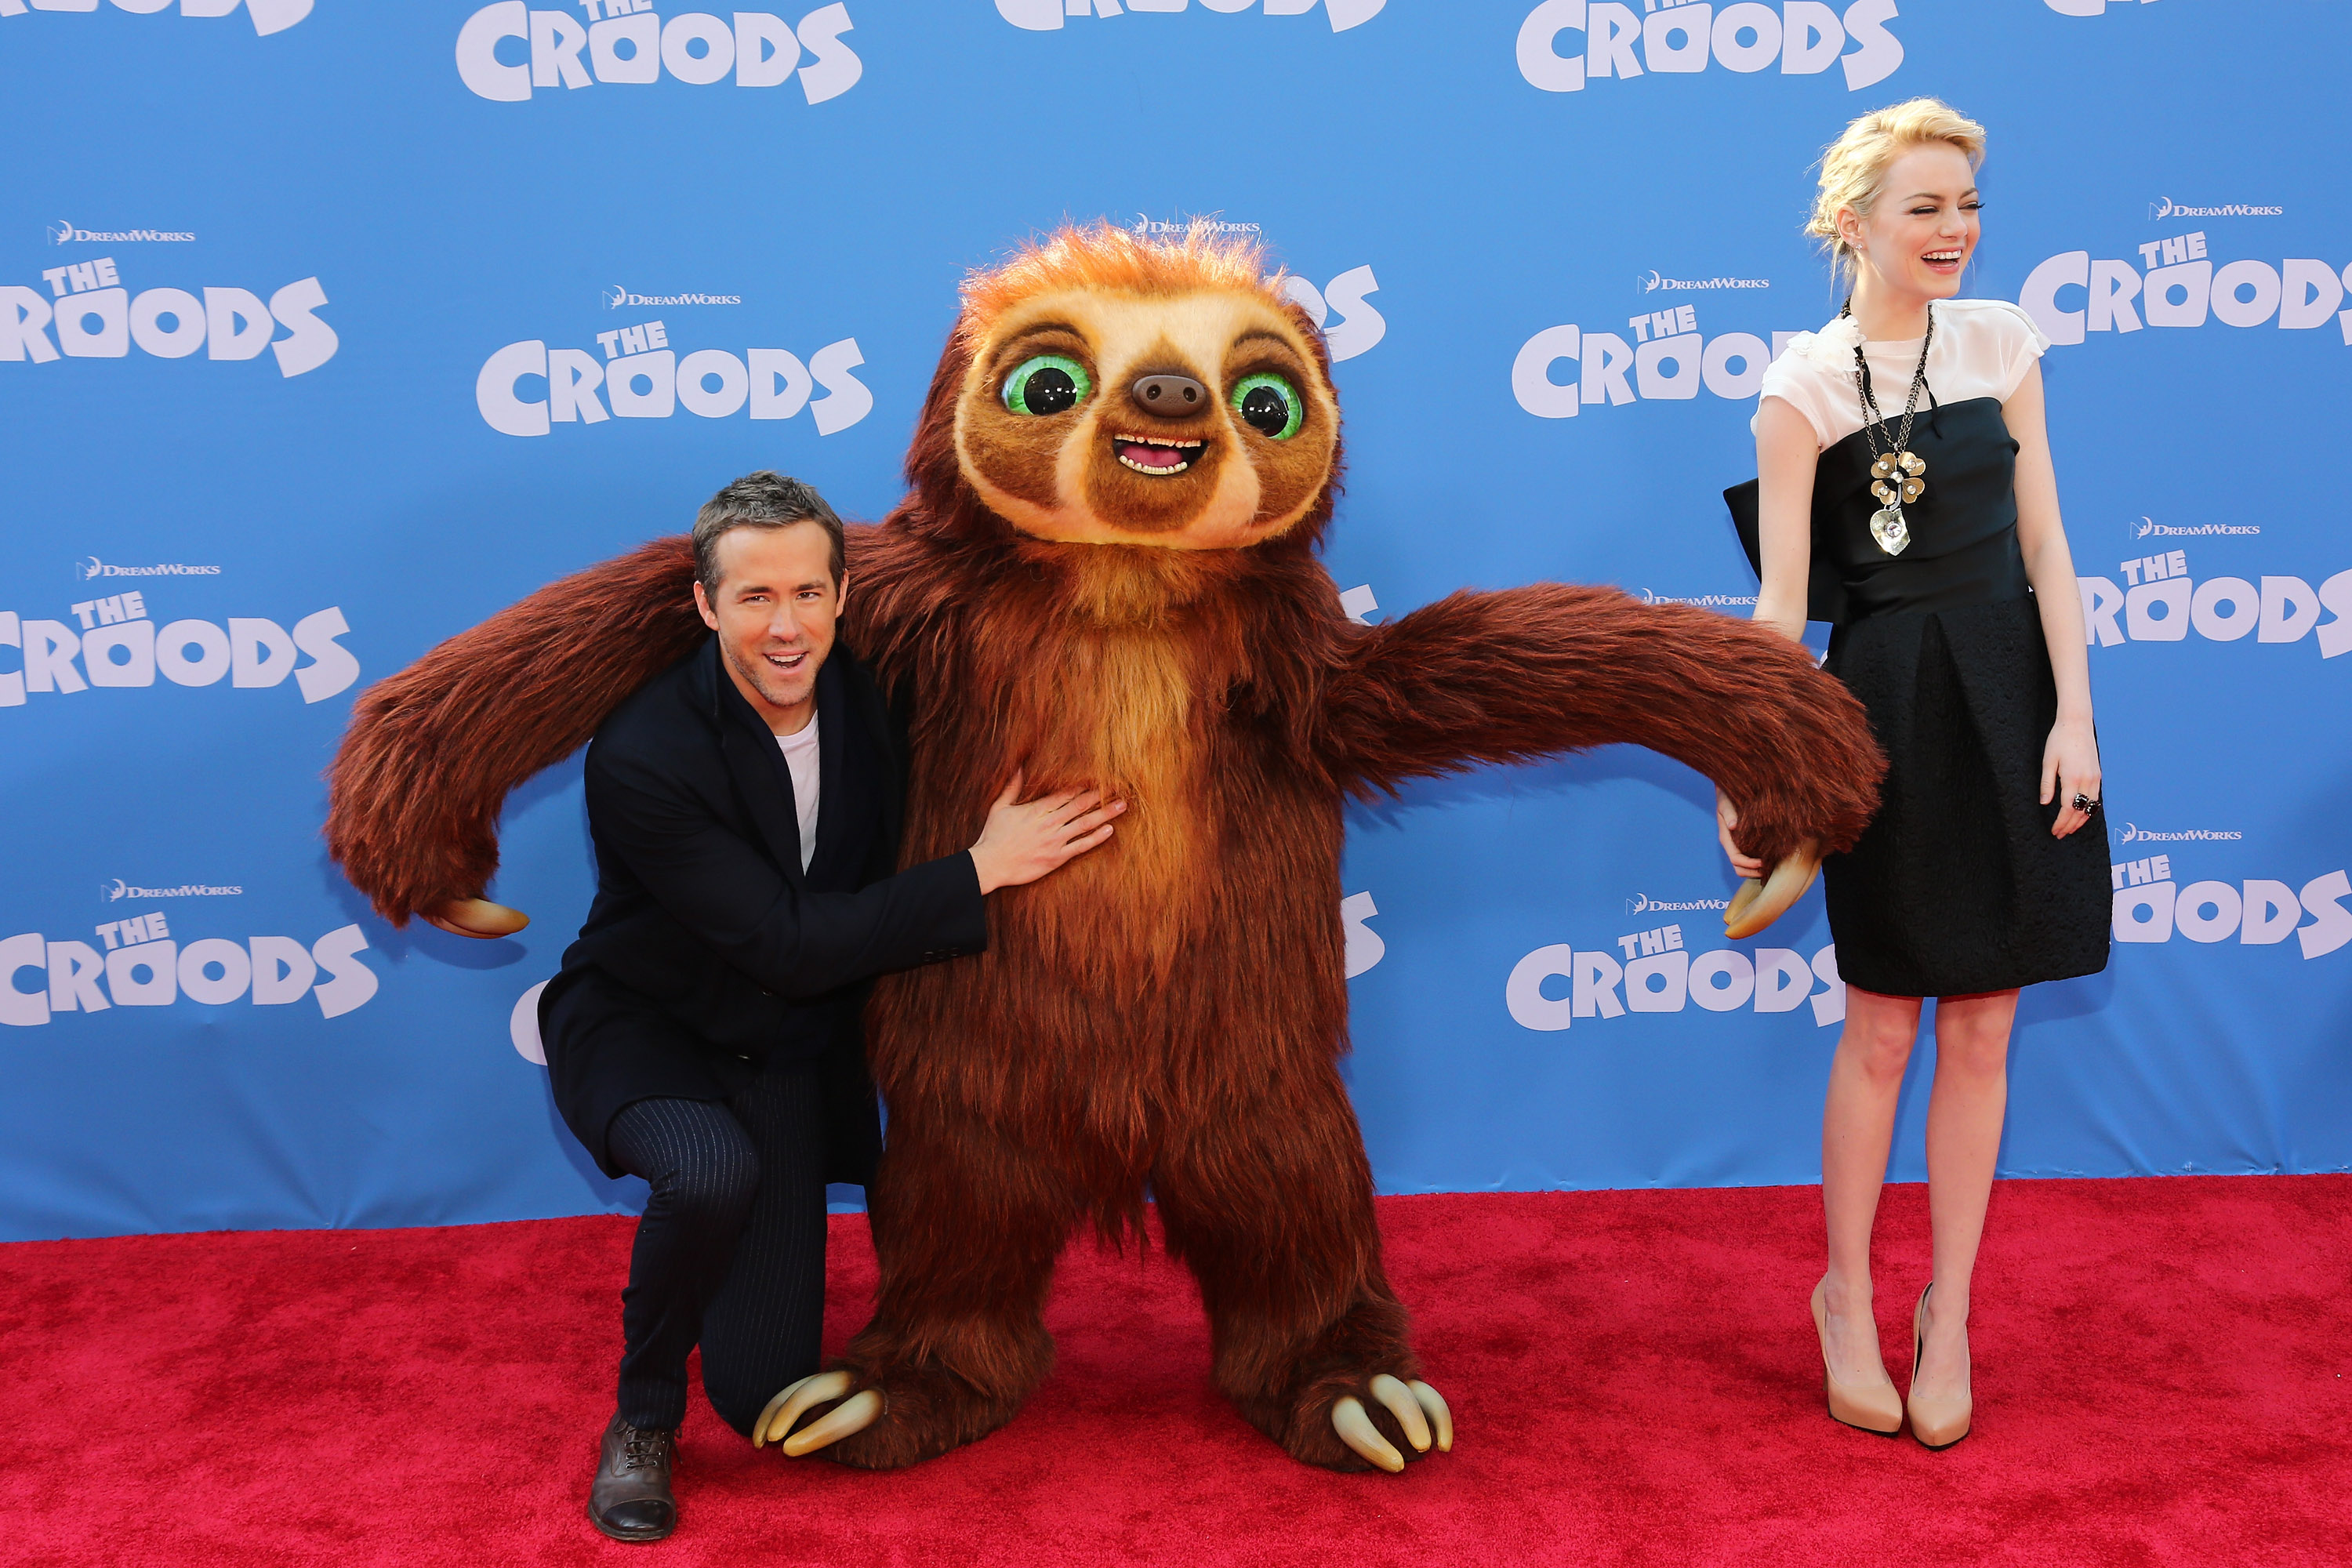 Emma Stone and Ryan Reynolds paired up on the red carpet for their NYC premiere of The Croods.